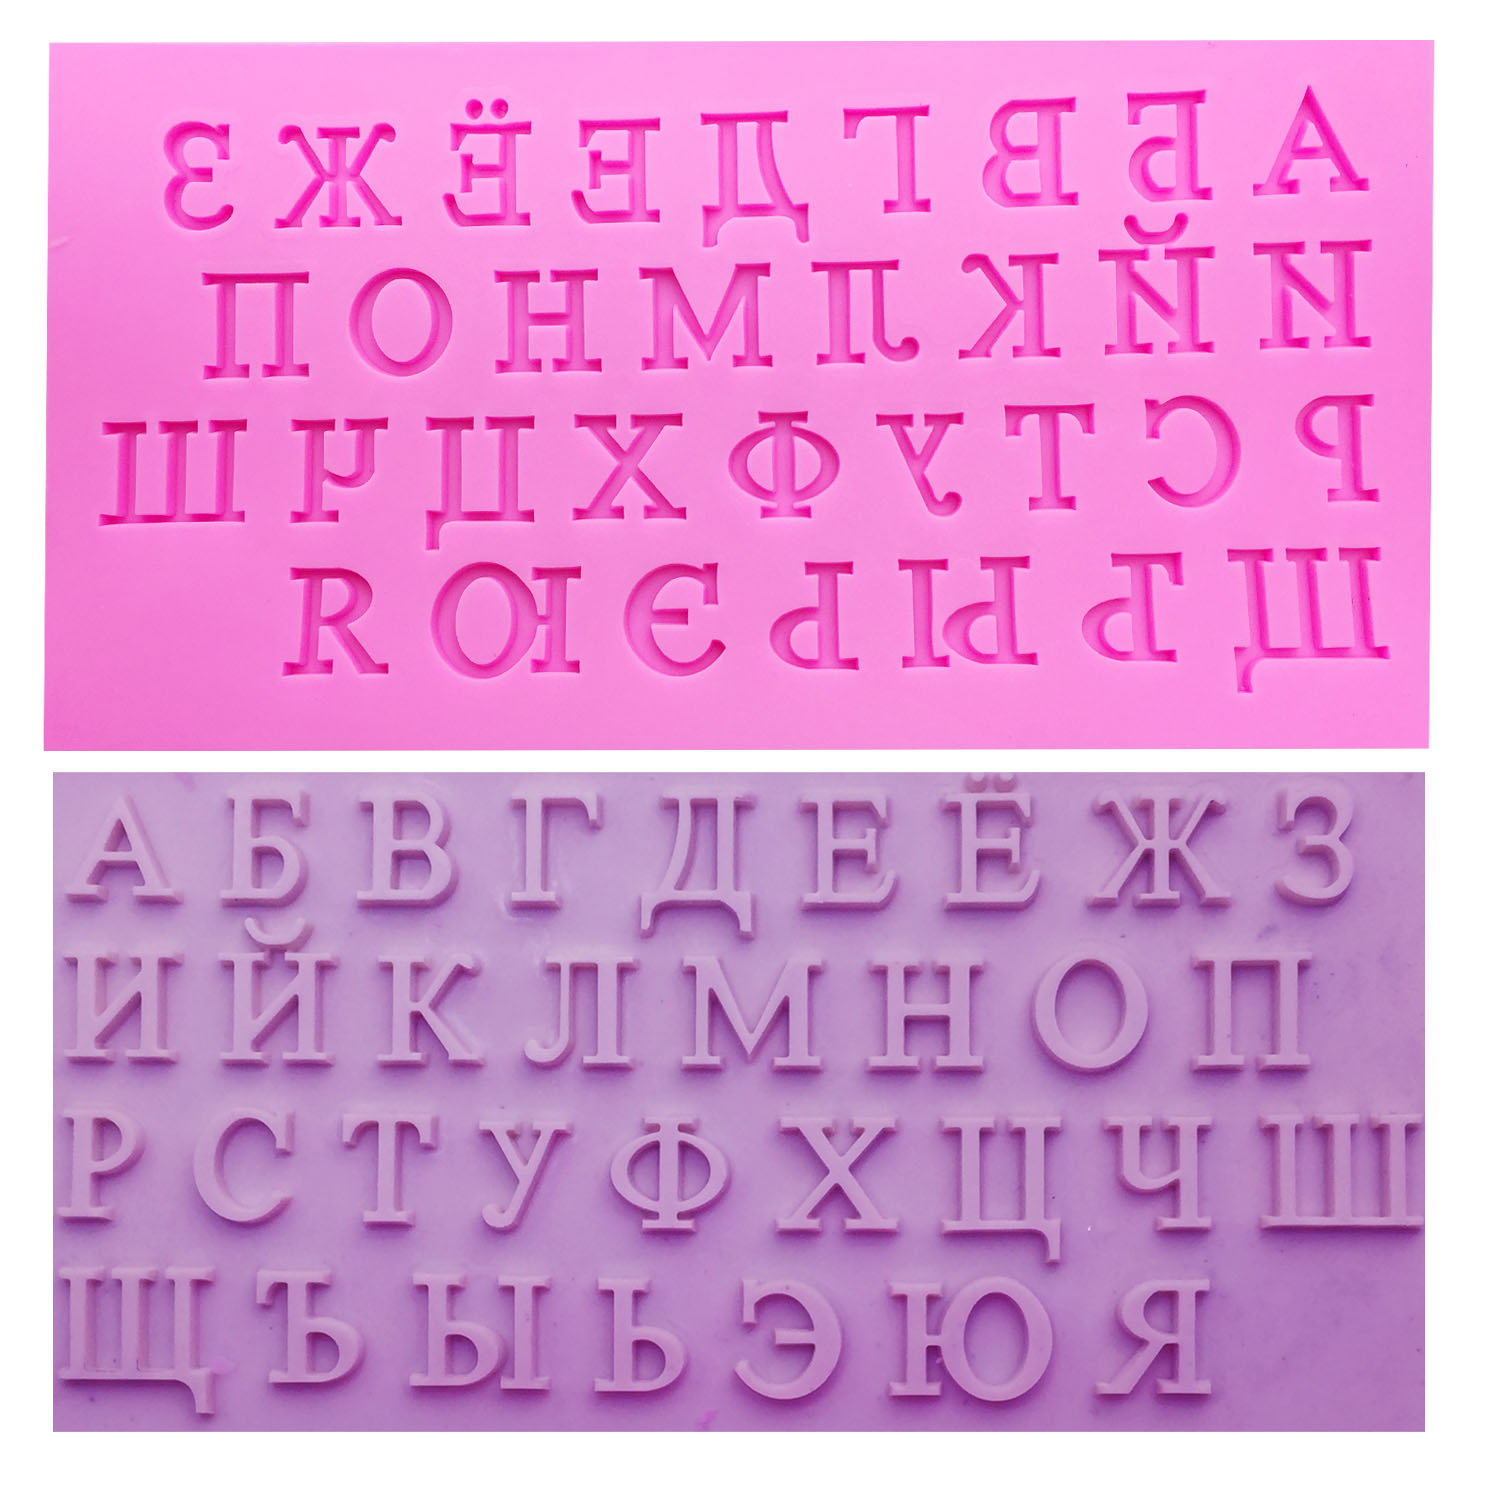 M0225 Russian Alphabet Letter DIY Fondant Cake Silicone Mold Chocolate Moulds Cake Decorating Tools Kitchen Cooking Accessories